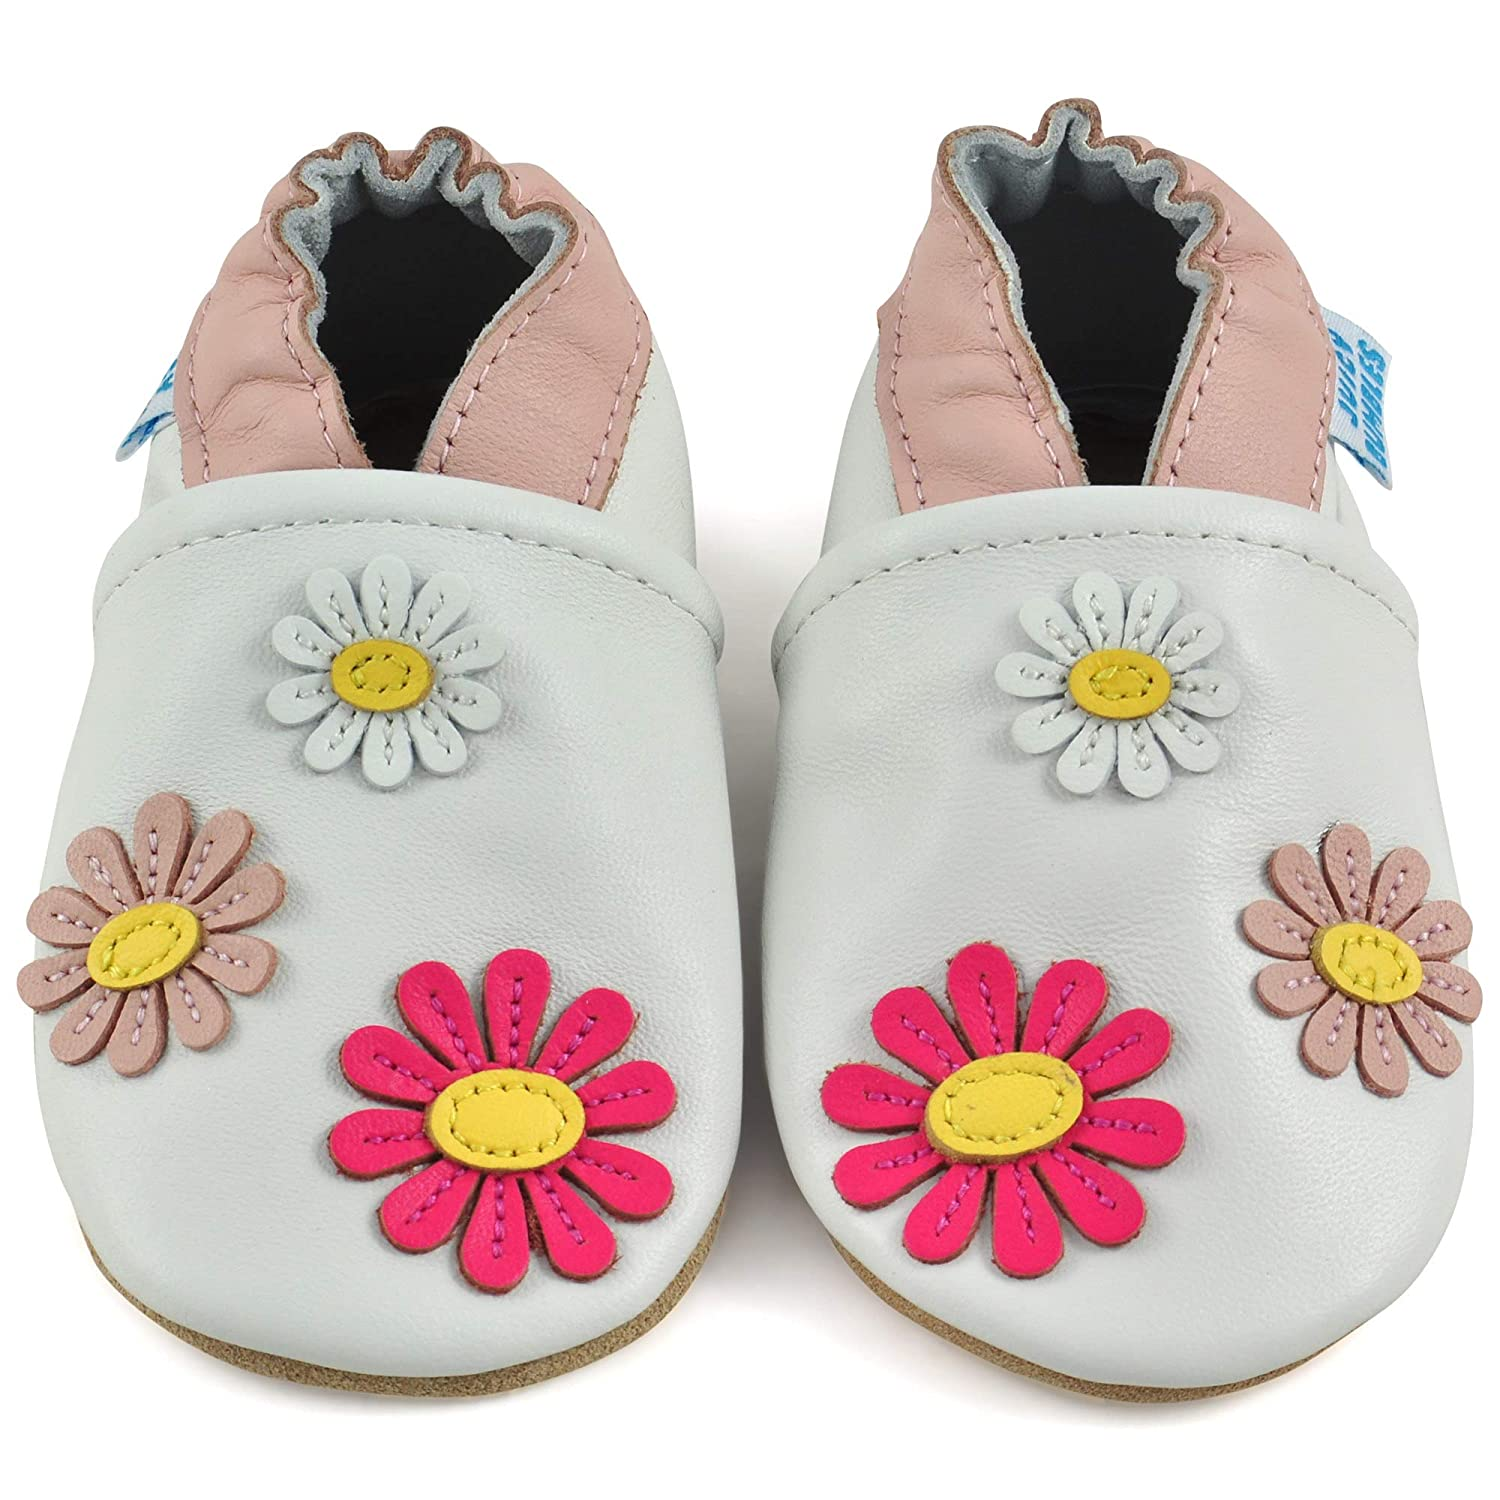 Baby Shoes with Soft Sole Leather Toddler Shoes Baby Girl Shoes Baby Walking Shoes Baby Boy Shoes